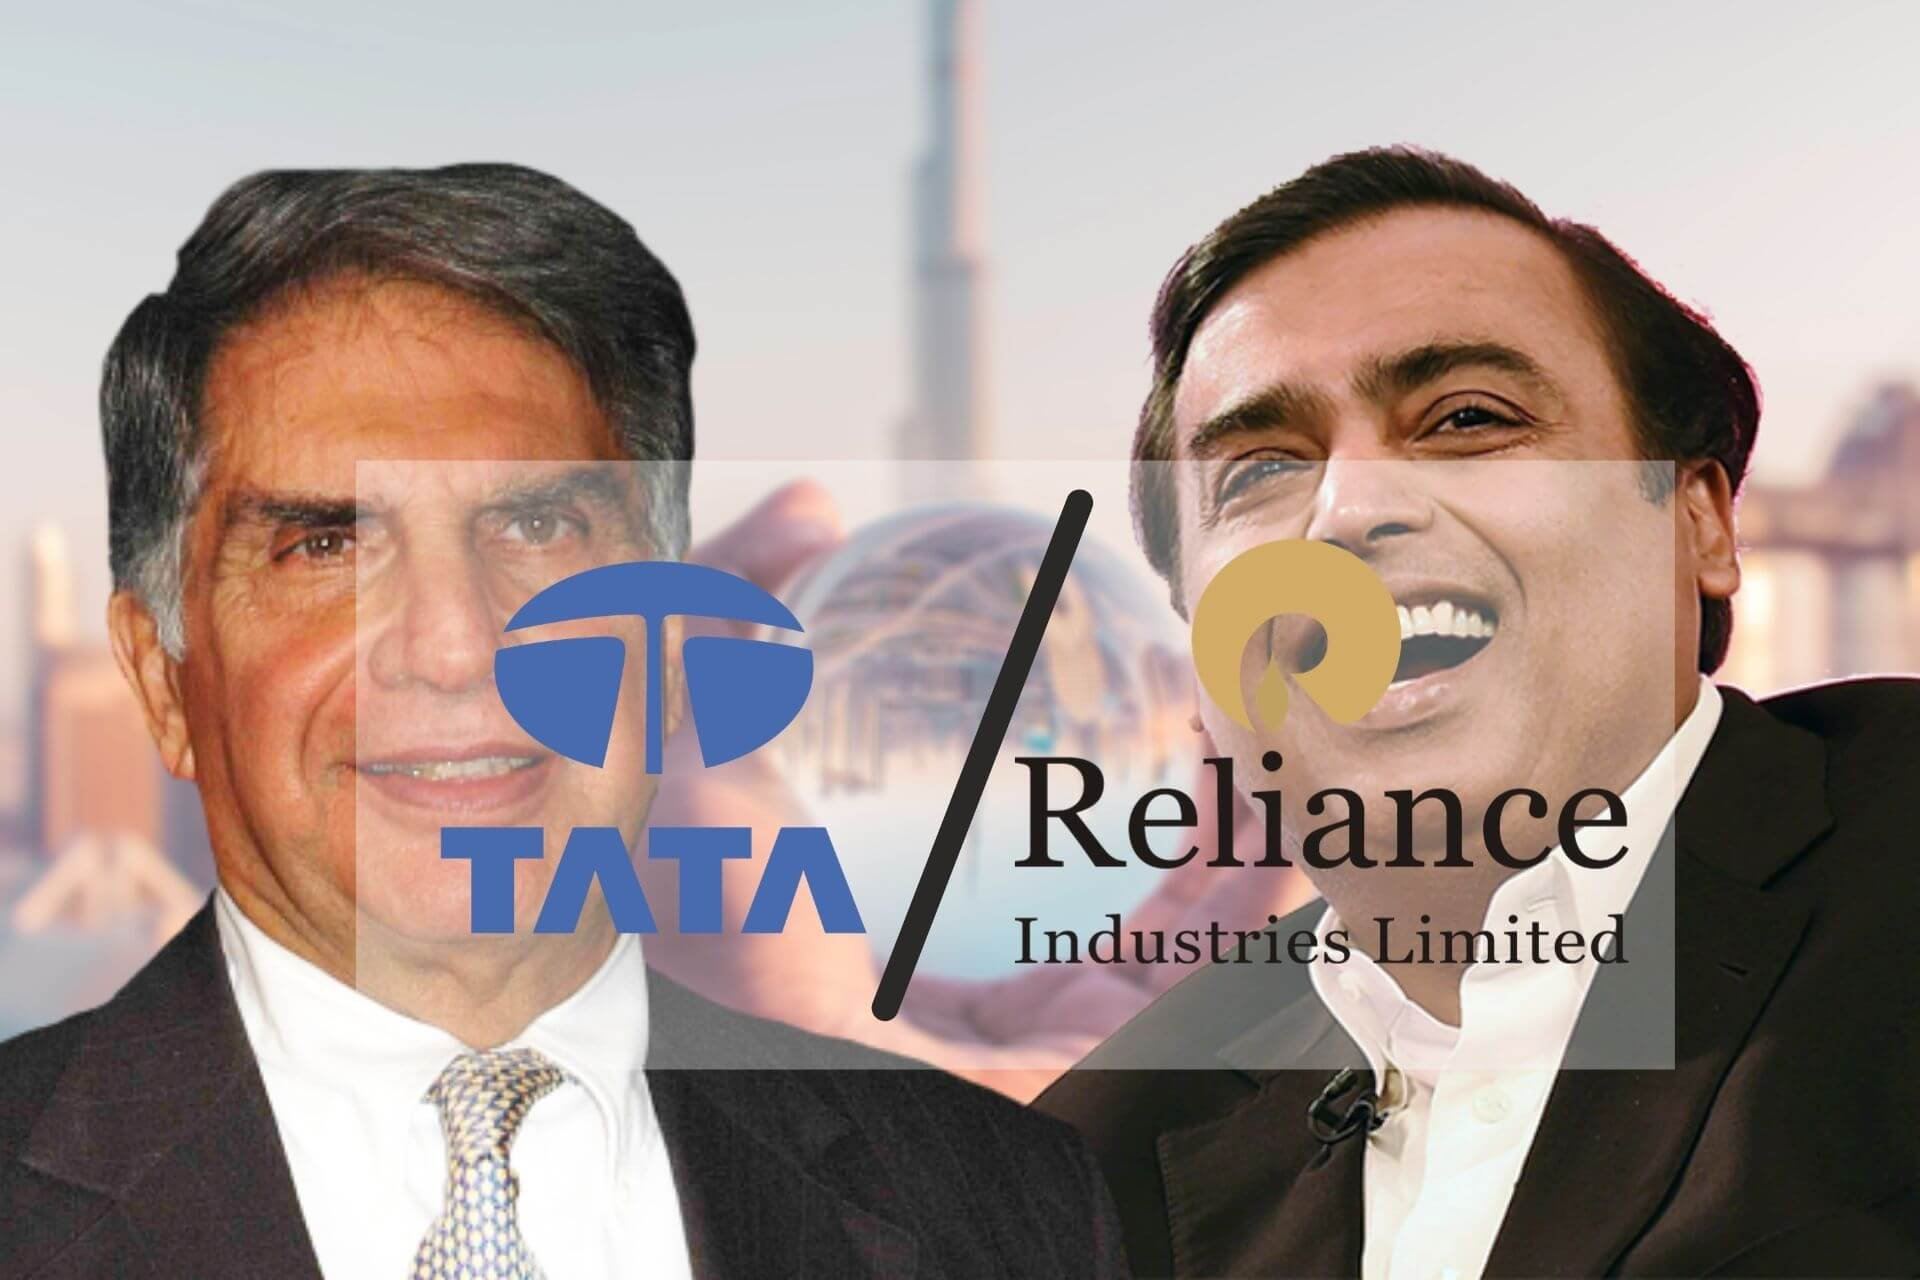 Tata vs Reliance Group cover